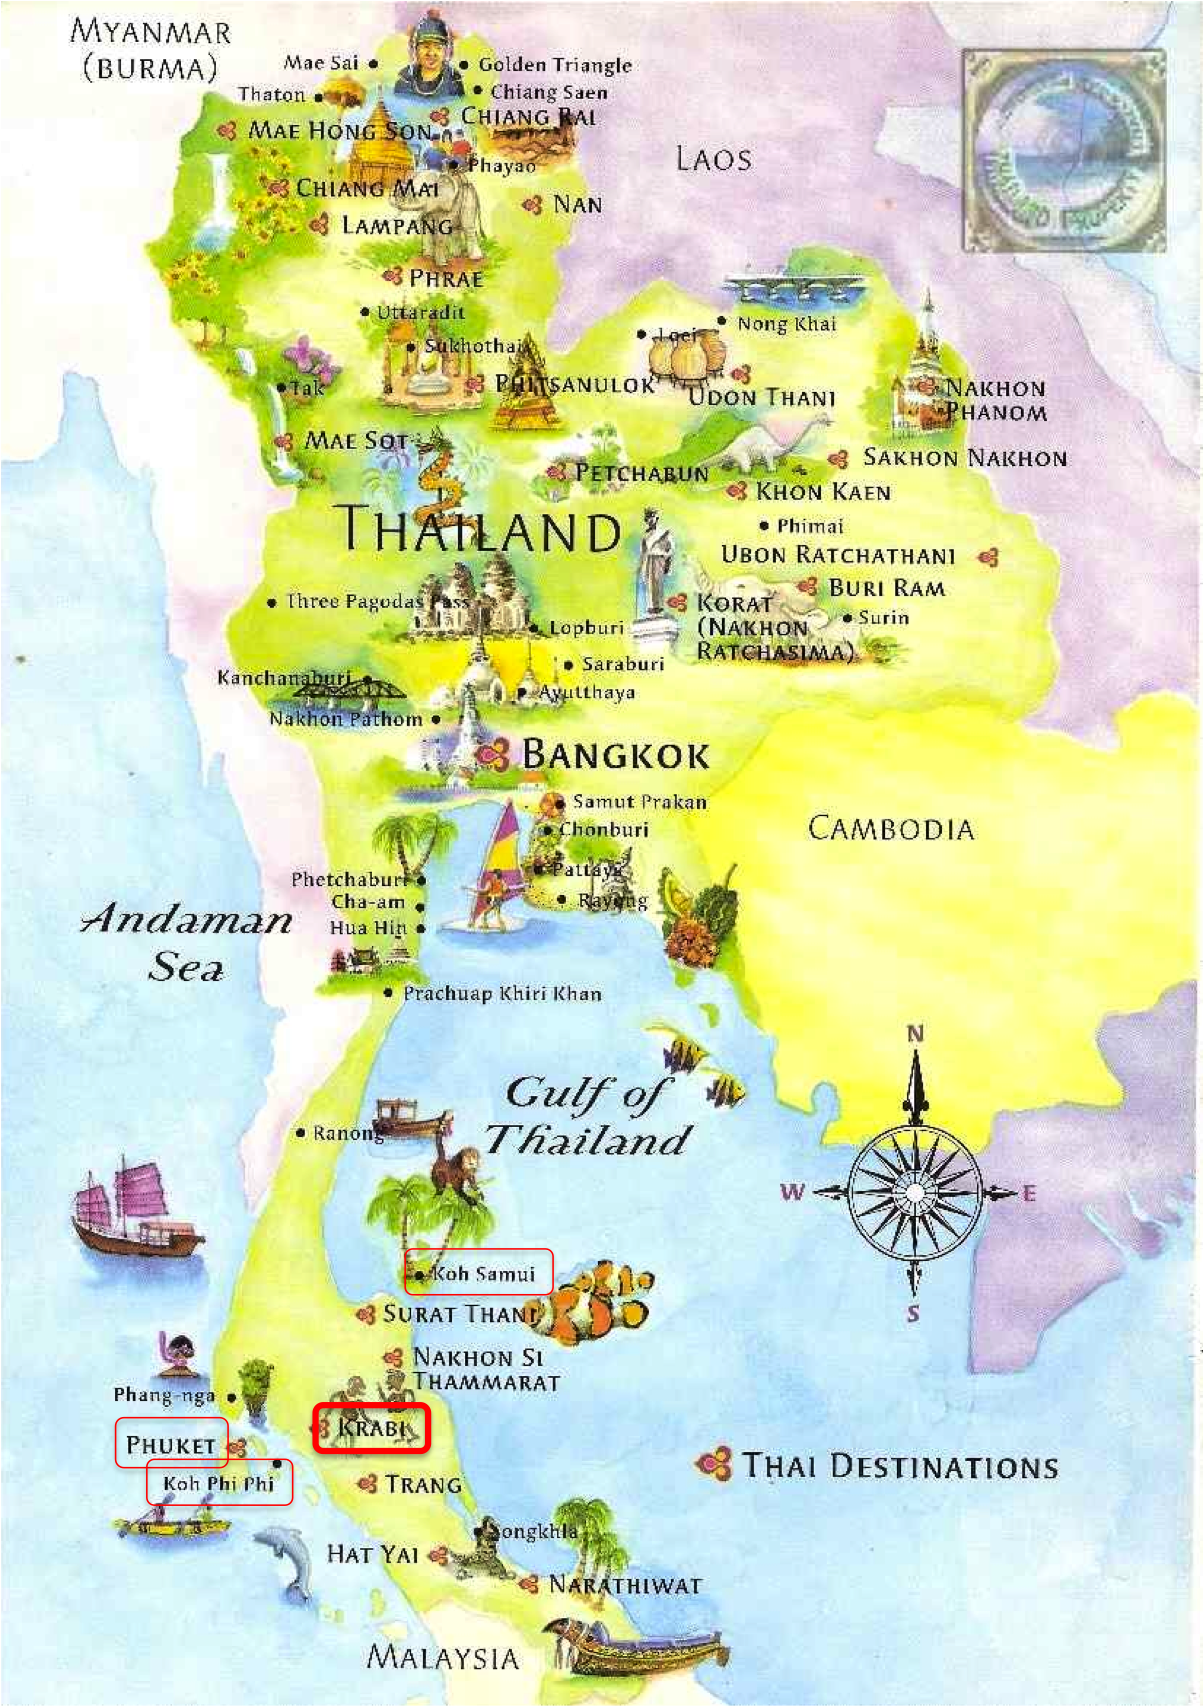 000 map thailand south beaches